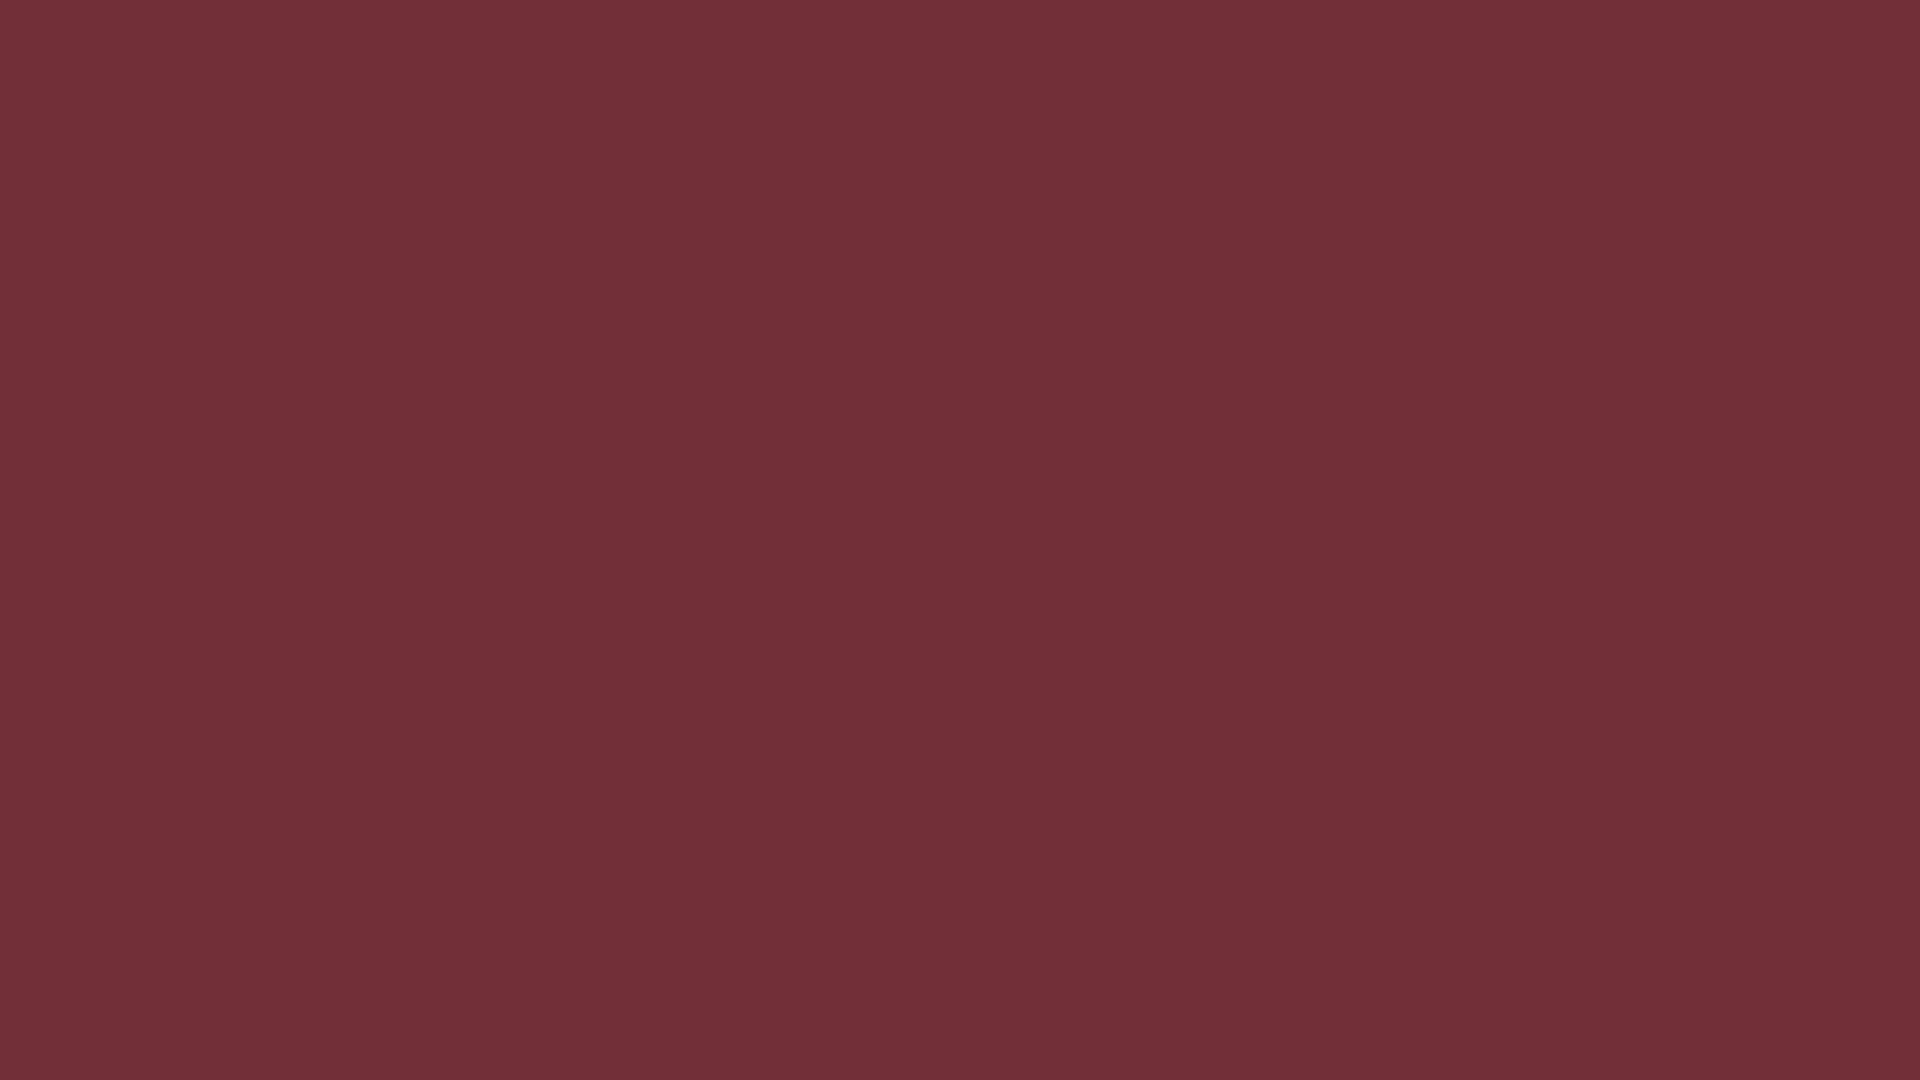 1920x1080 Wine Solid Color Background